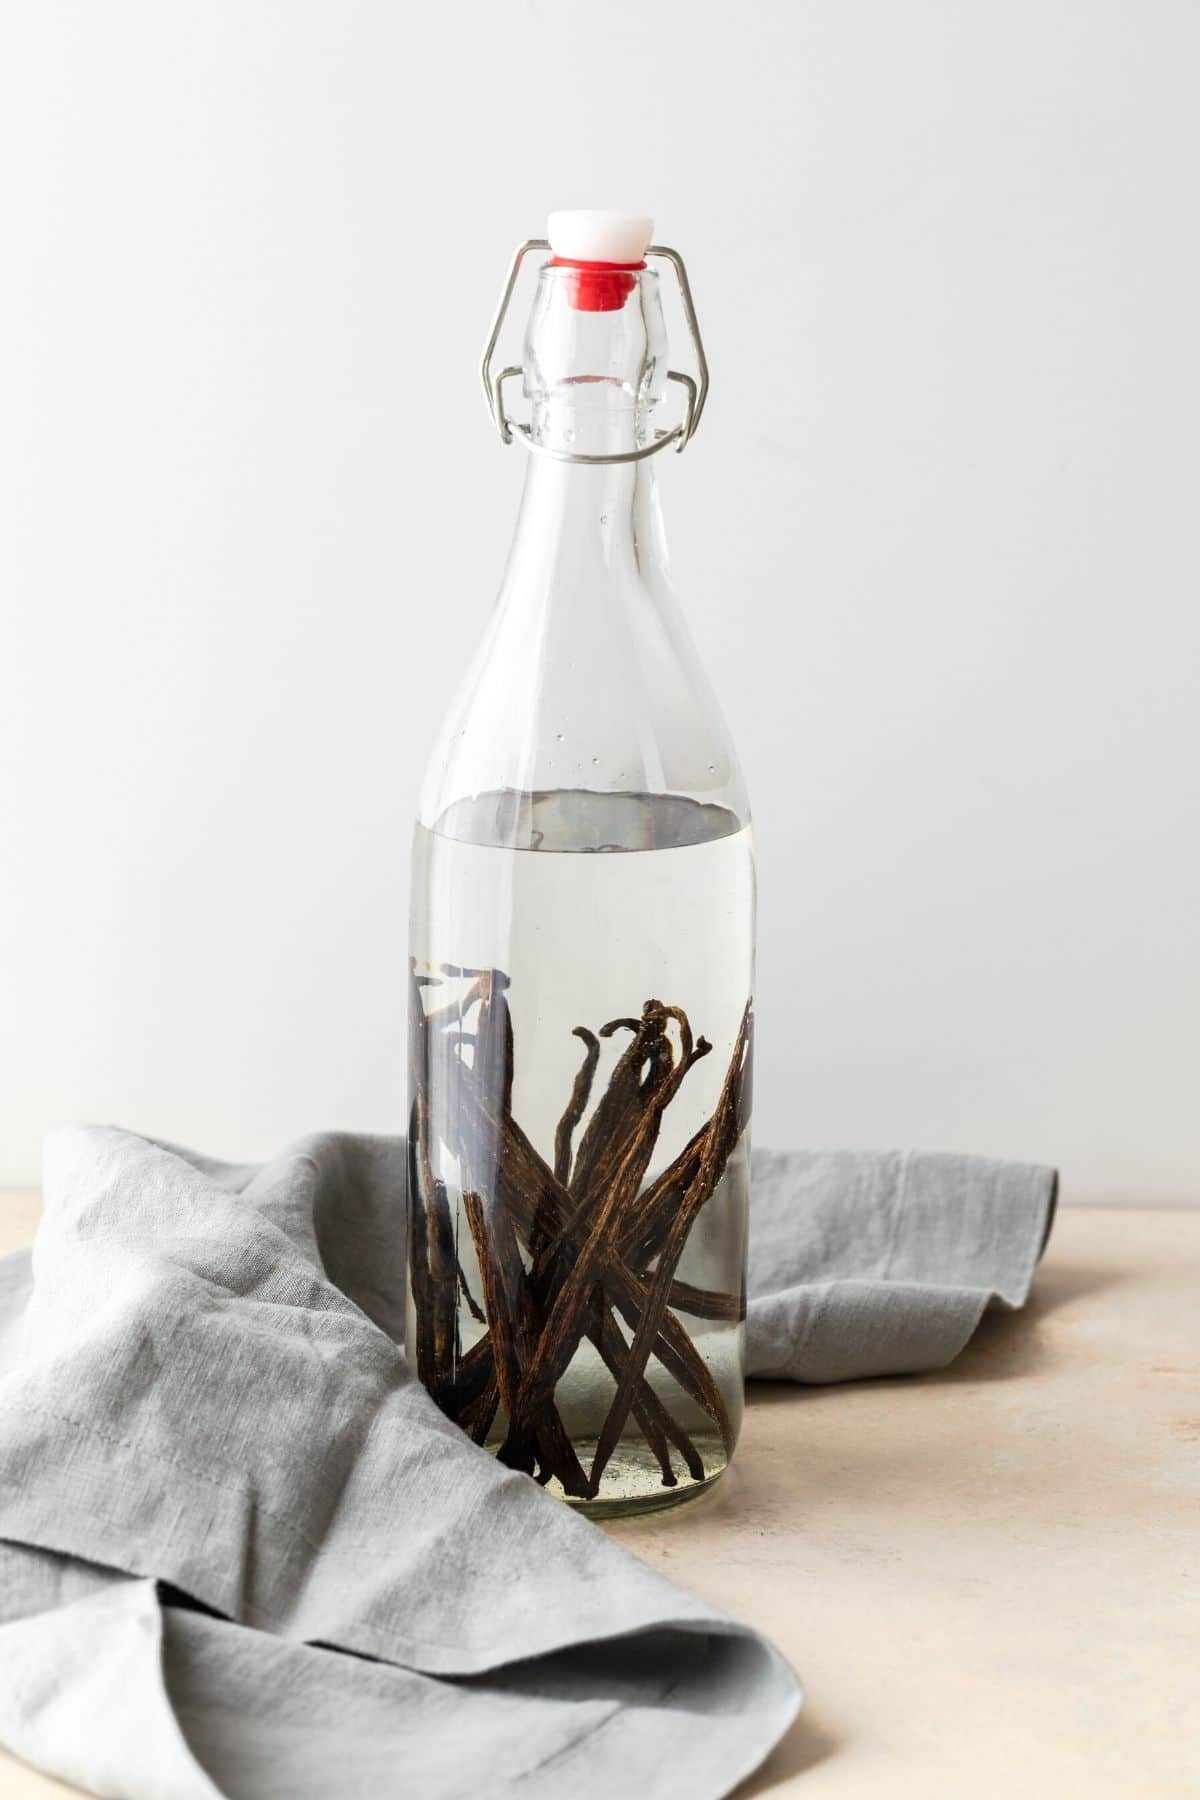 vanilla beans in a clear jar of vodka